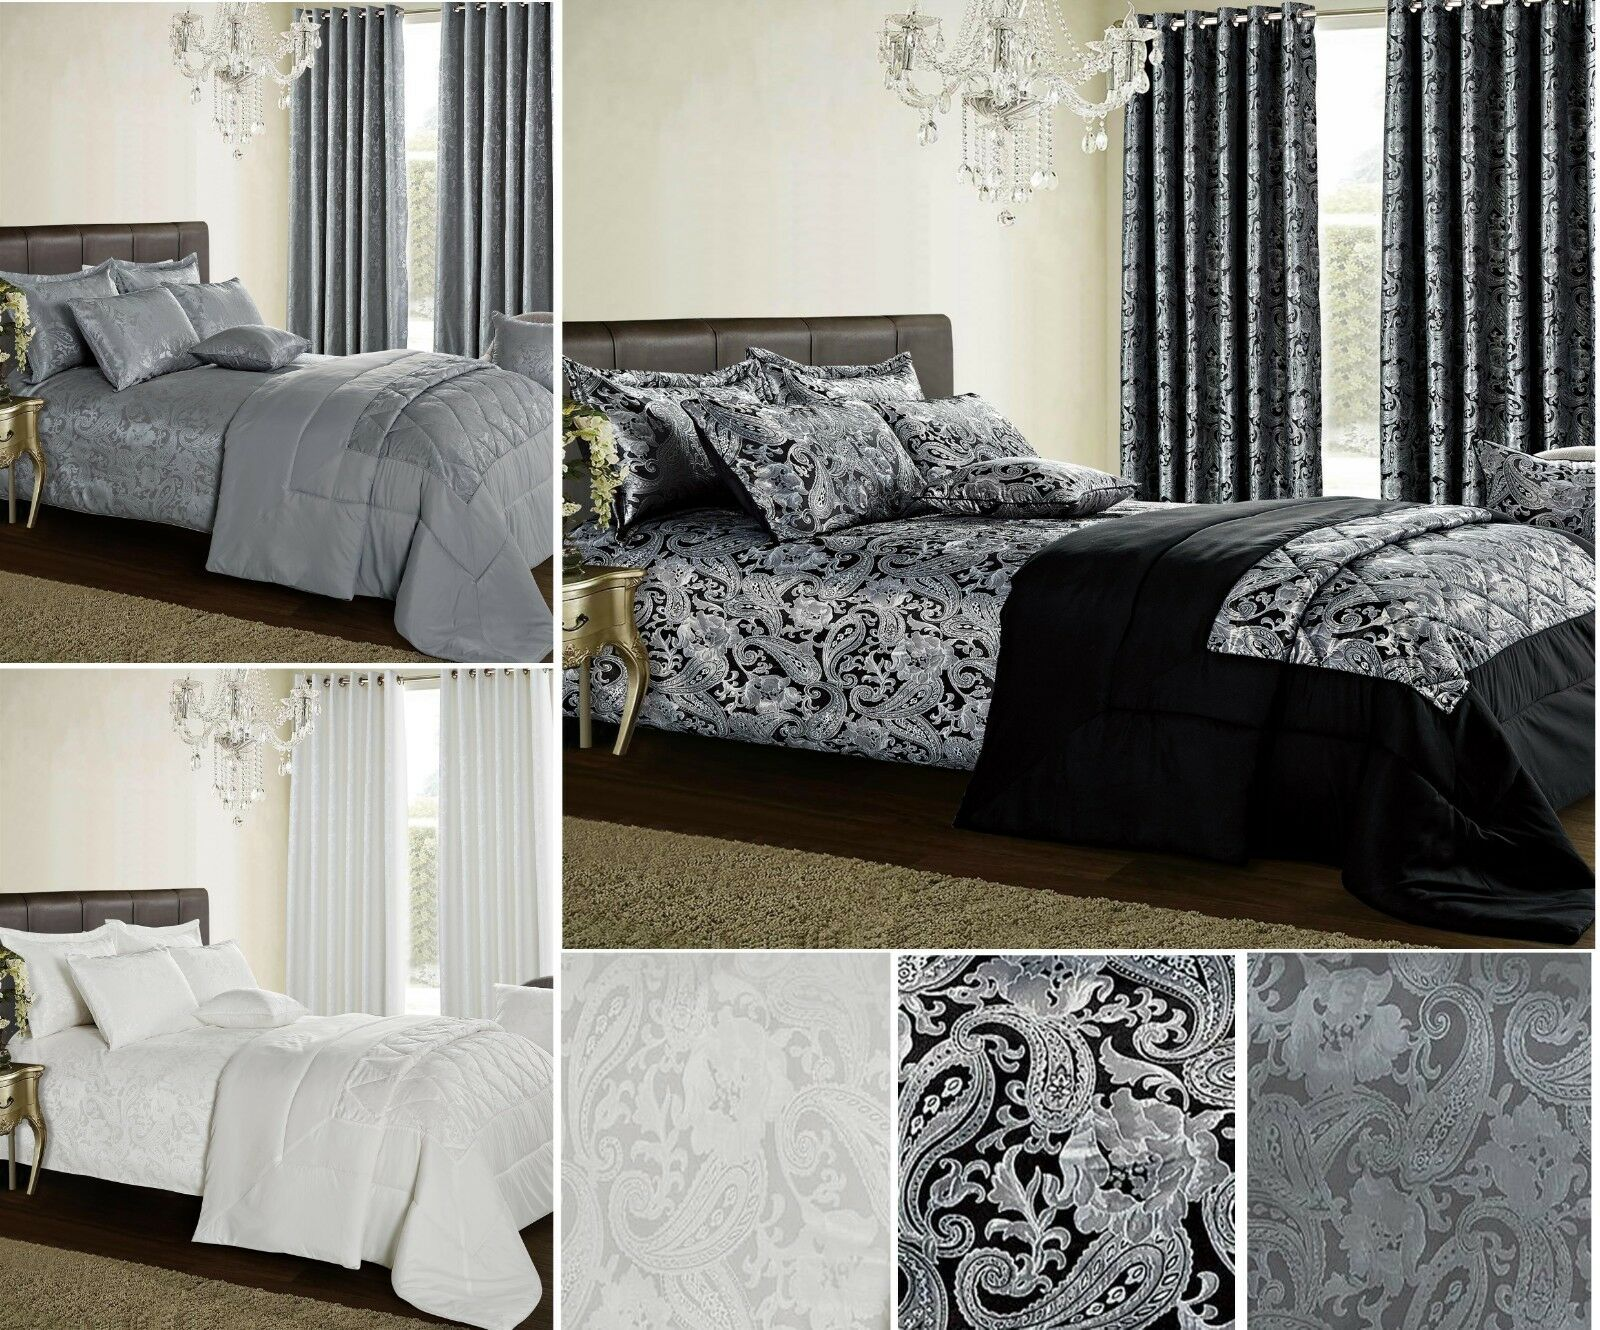 Paisley Bedspread Comforter Floral Bed Runner Jacquard Bed Throw Pillow Shams